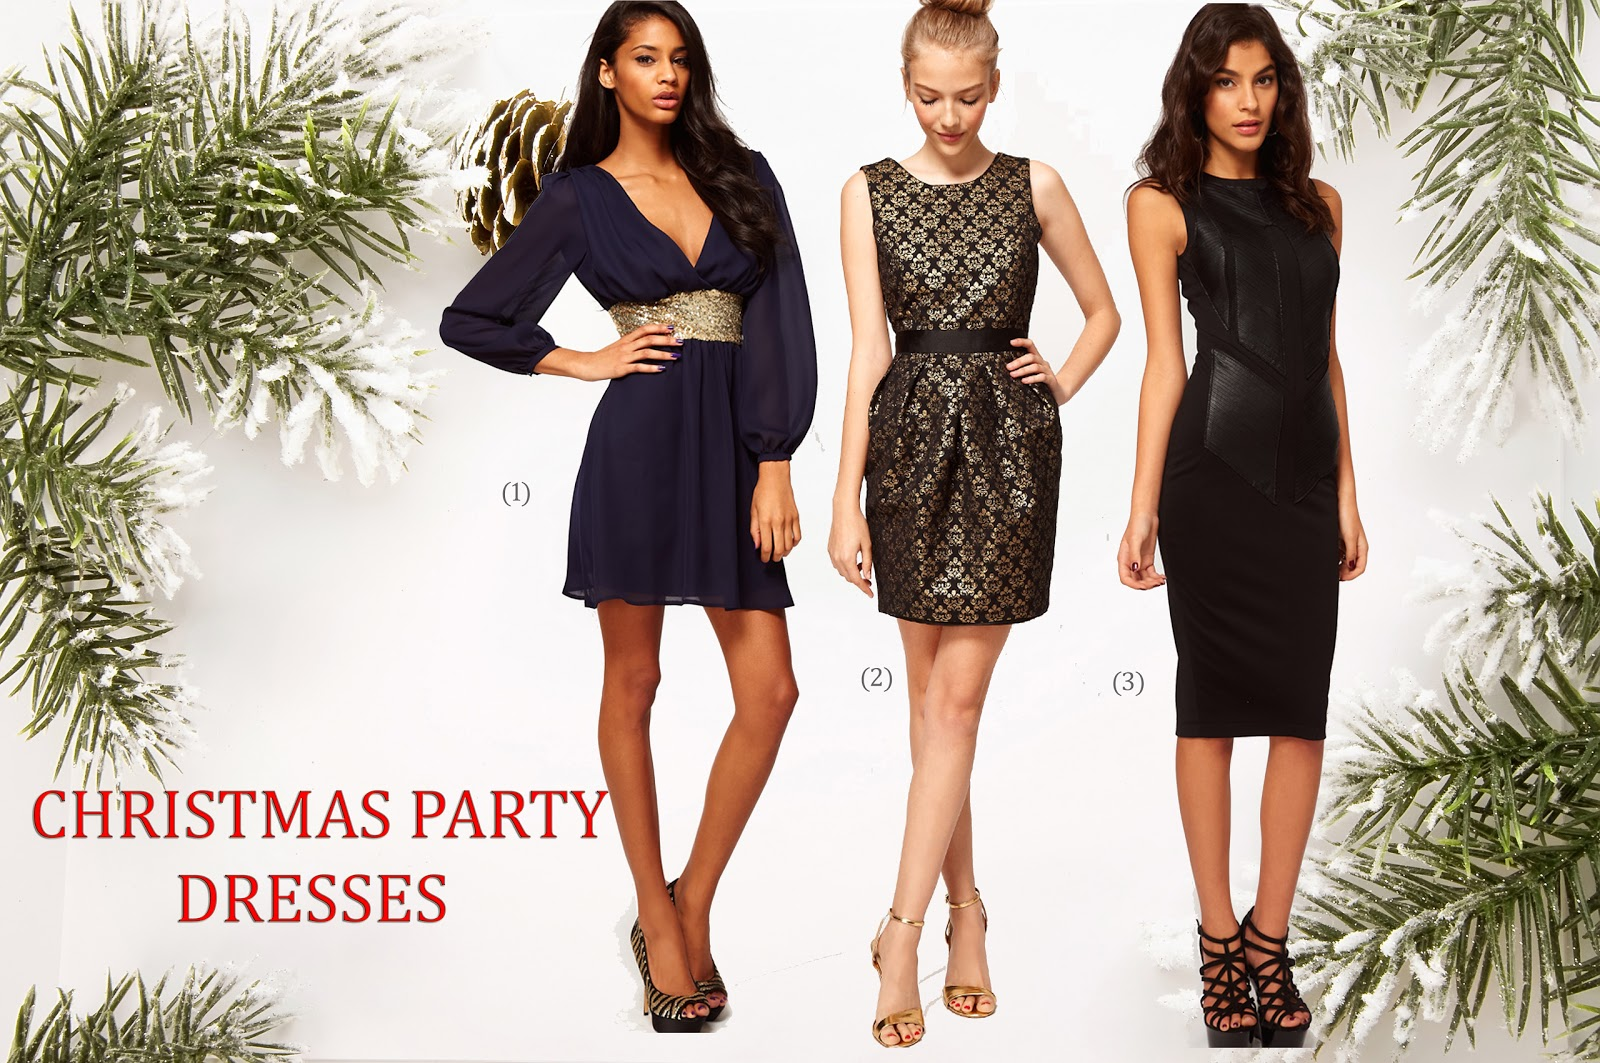 WHAT TO WEAR TO A WORK CHRISTMAS PARTY - A N E M I S T Y L E